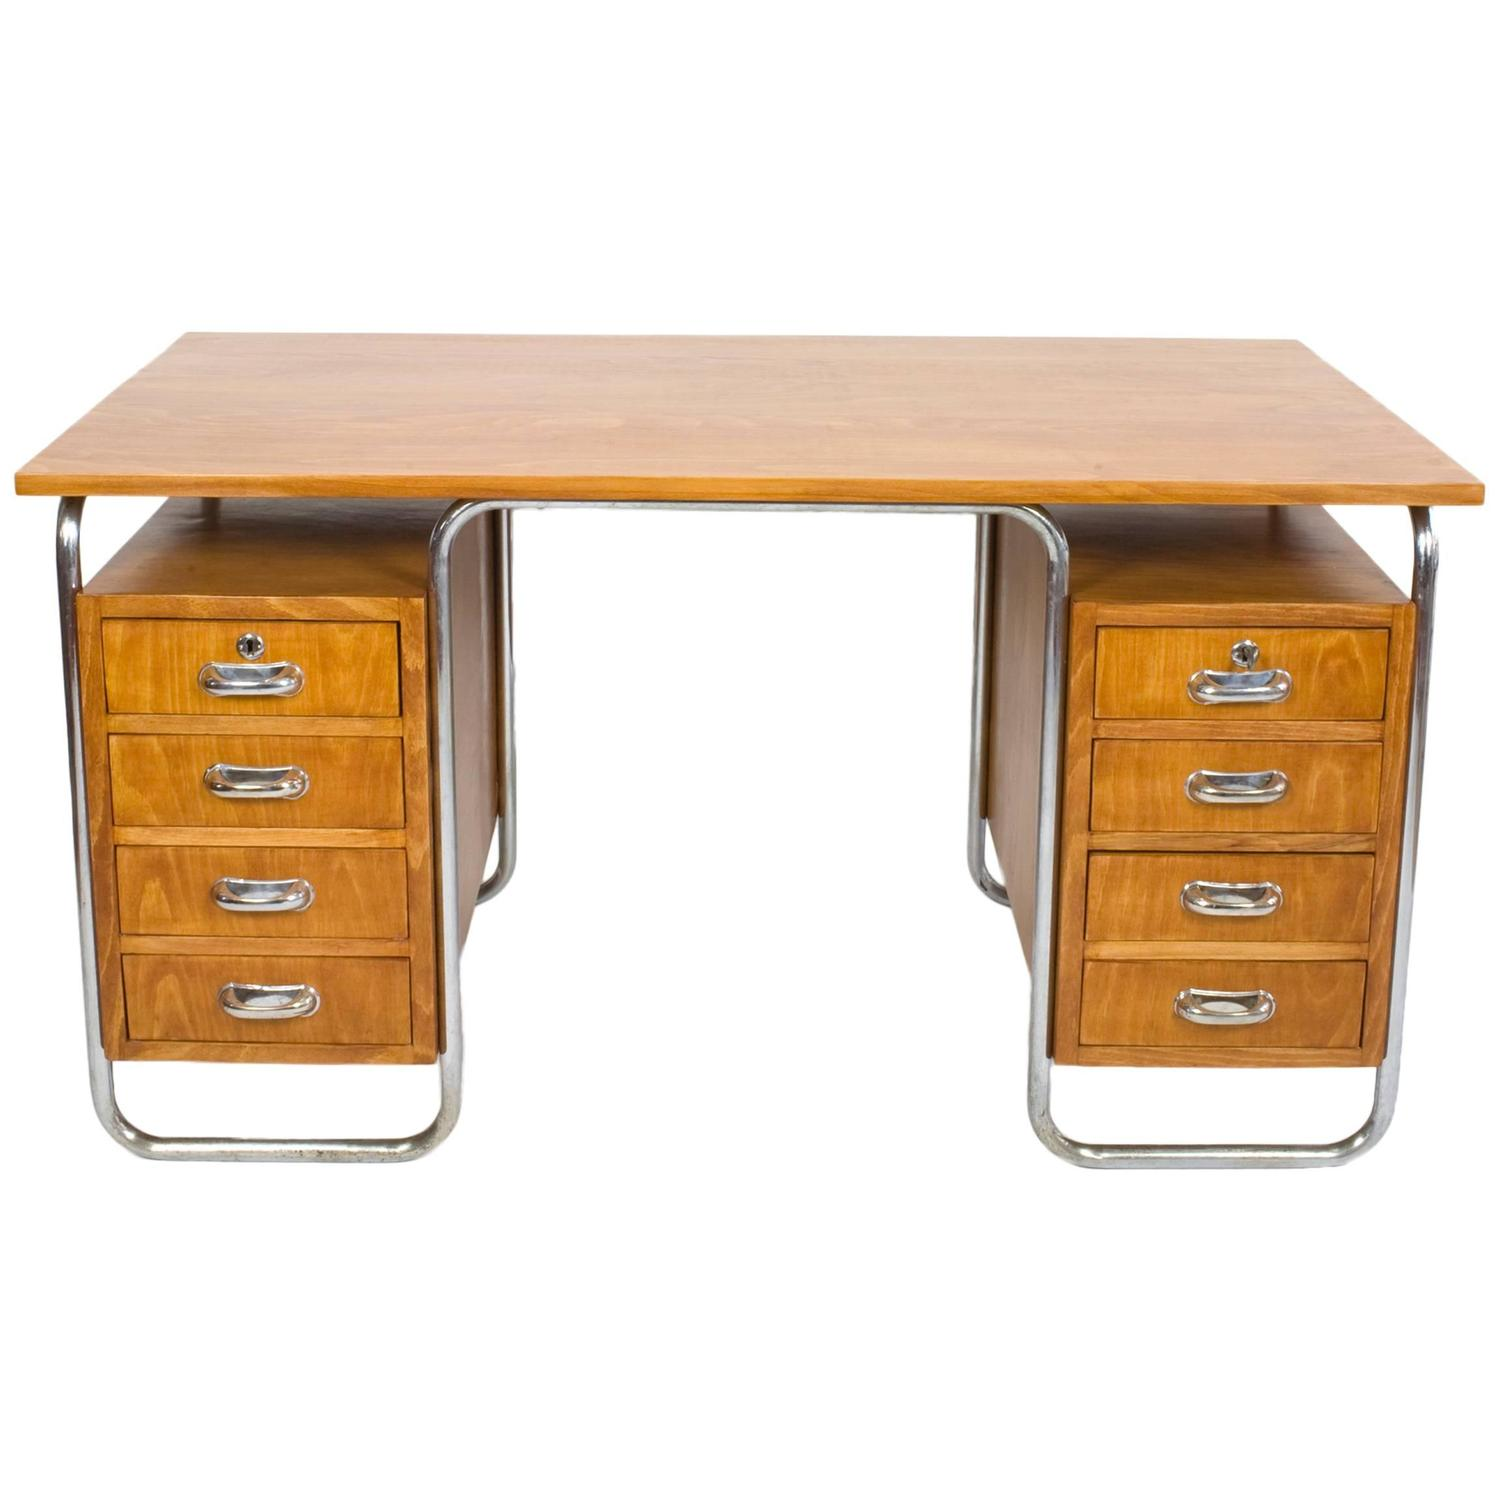 1930s Bauhaus Chrome Steel And Beech Desk By Rudolf Vichr For At 1stdibs